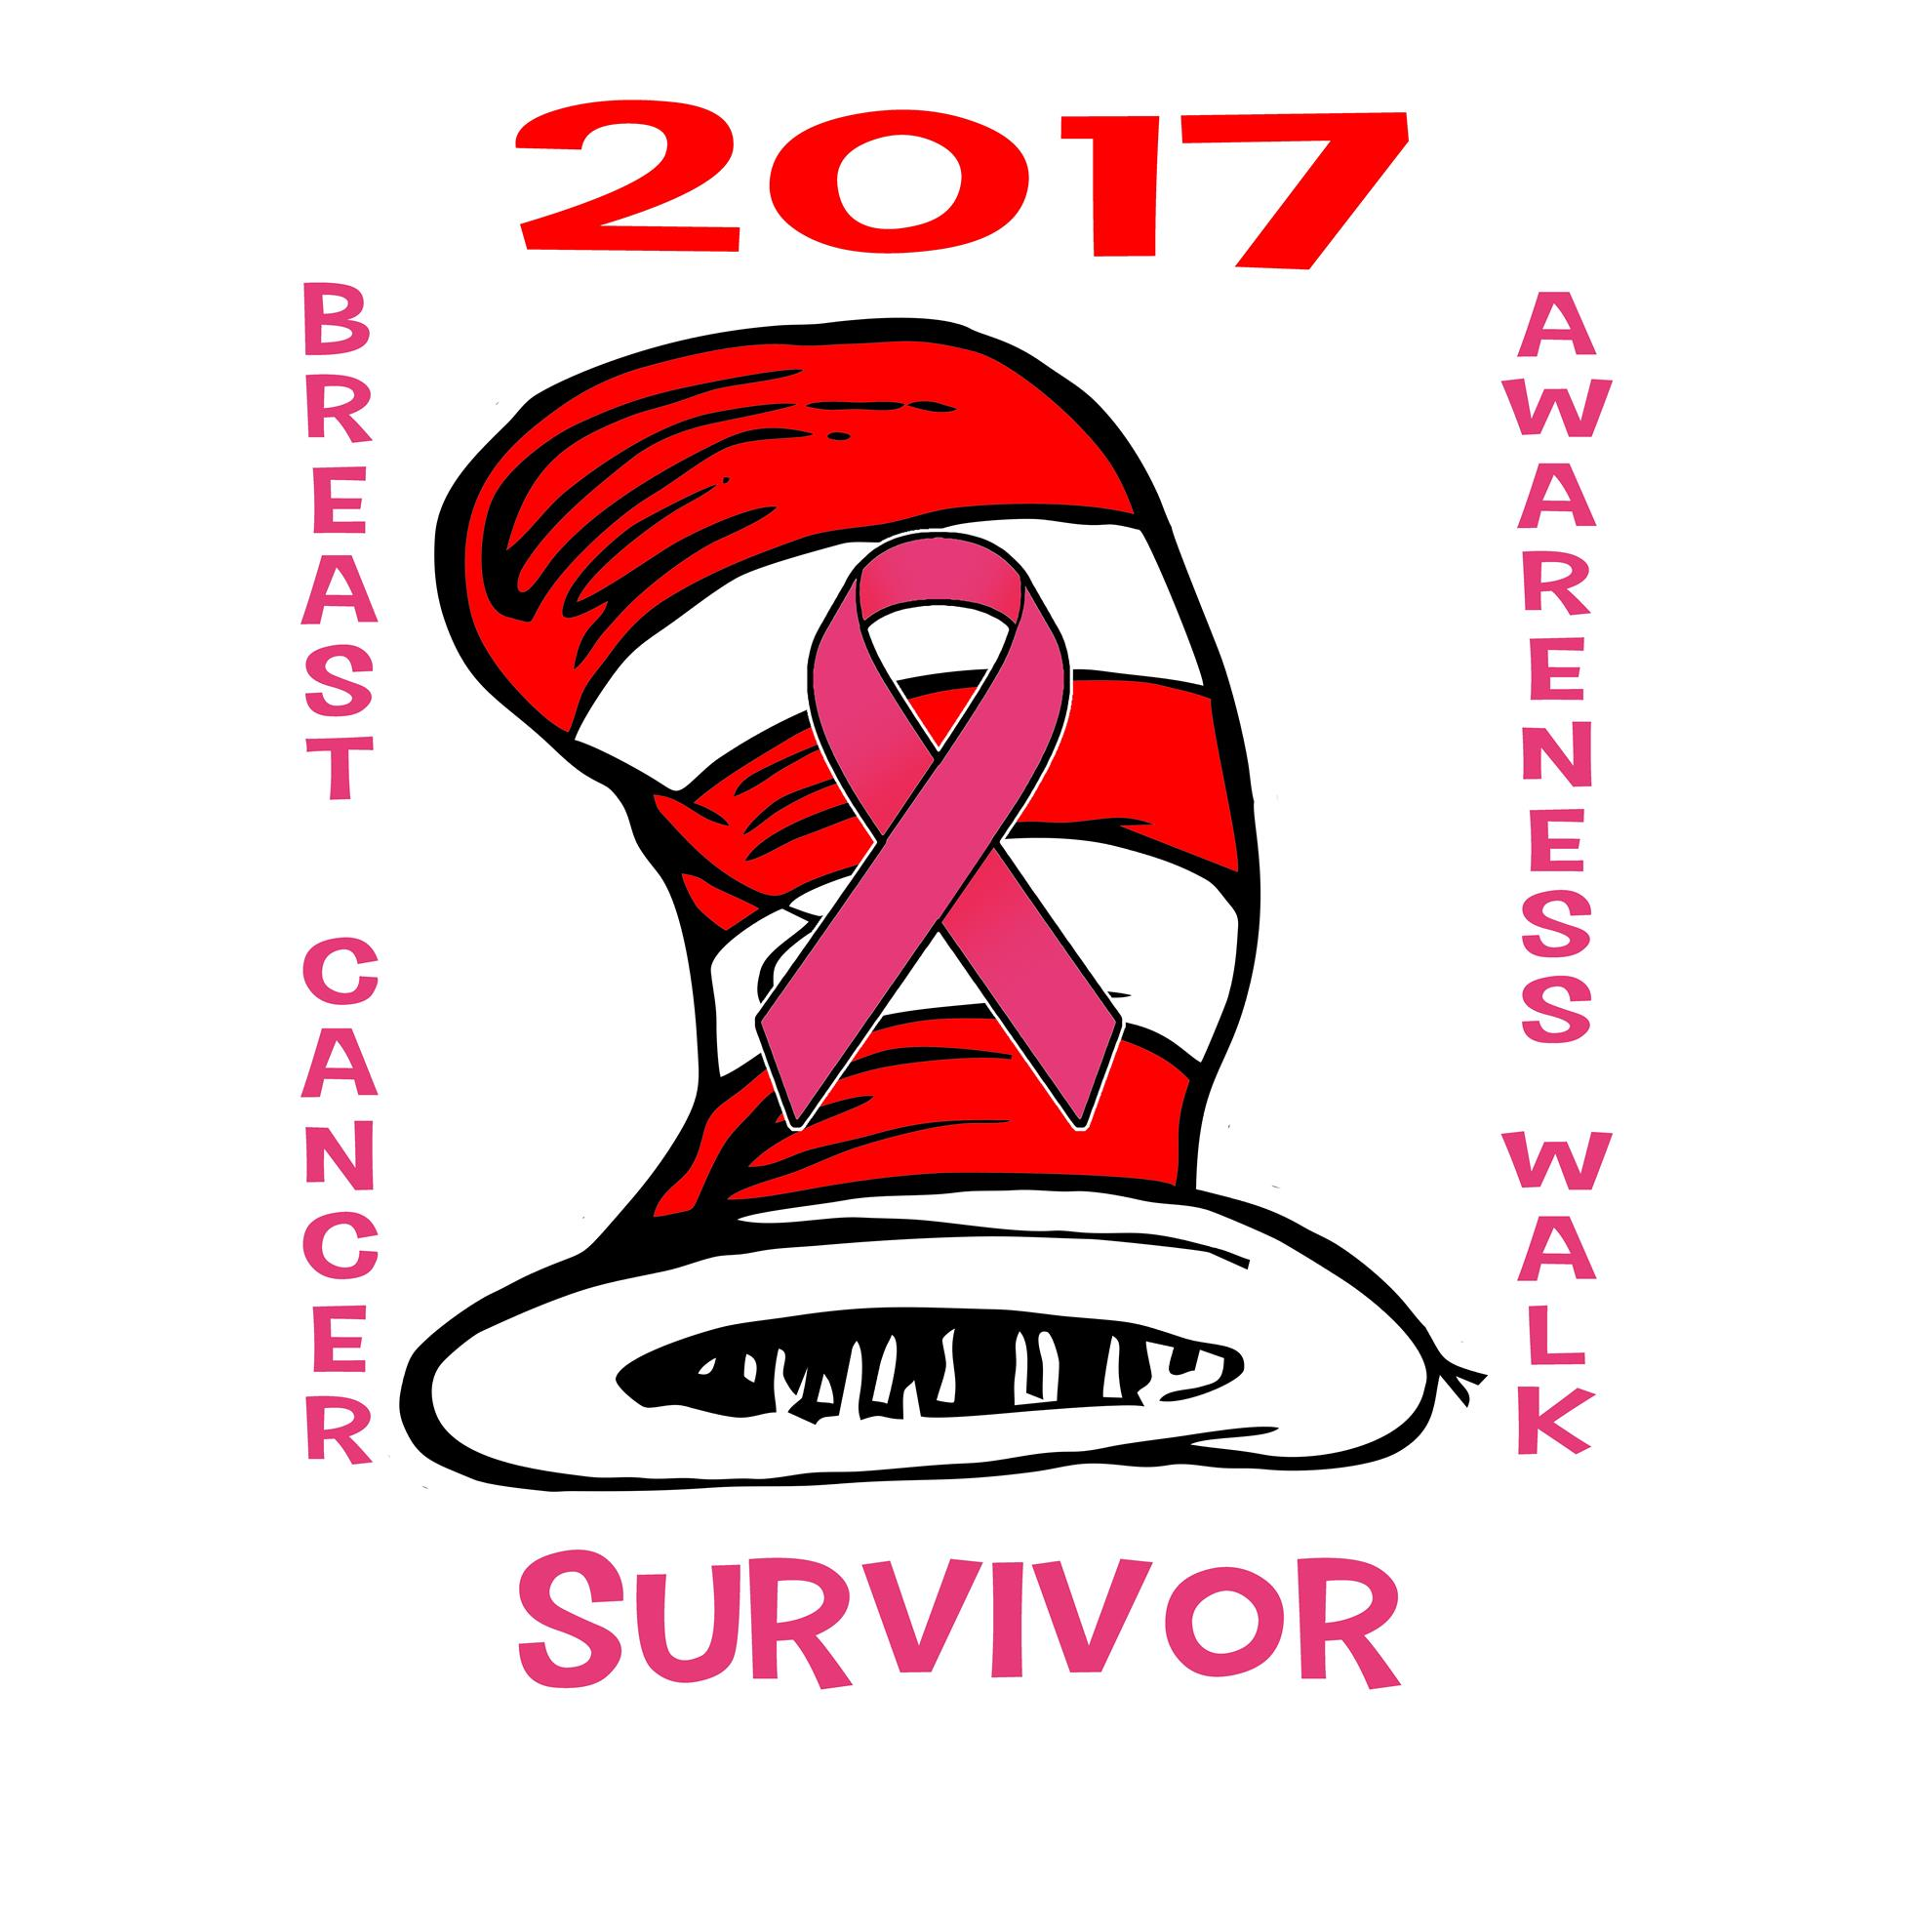 2017 Breast Cancer Awareness Walk & Run